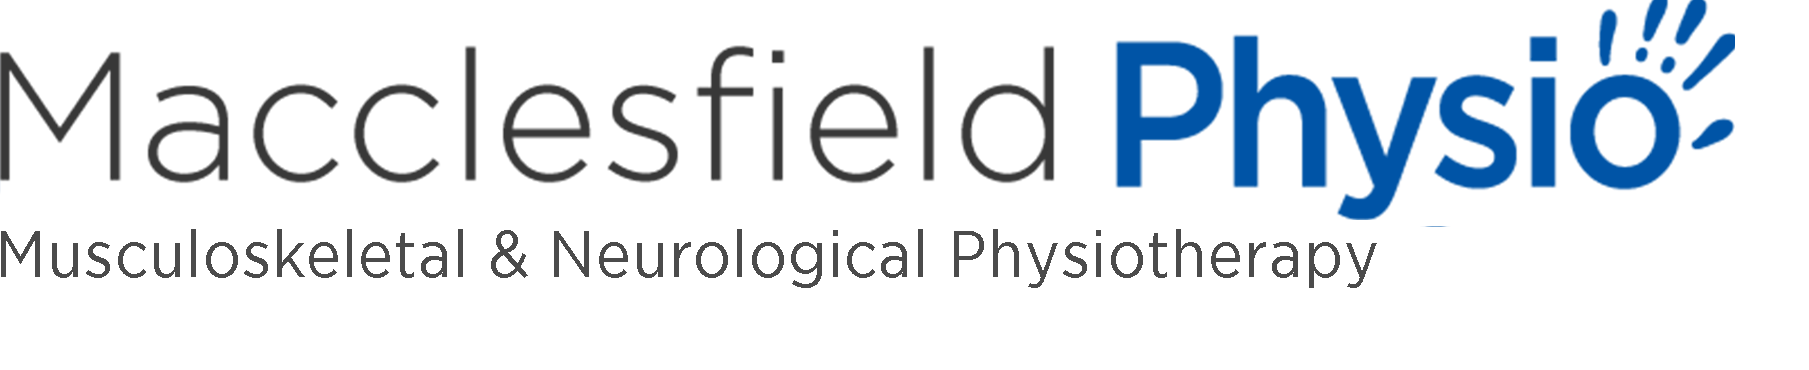 The logo for Macclesfield Physio.